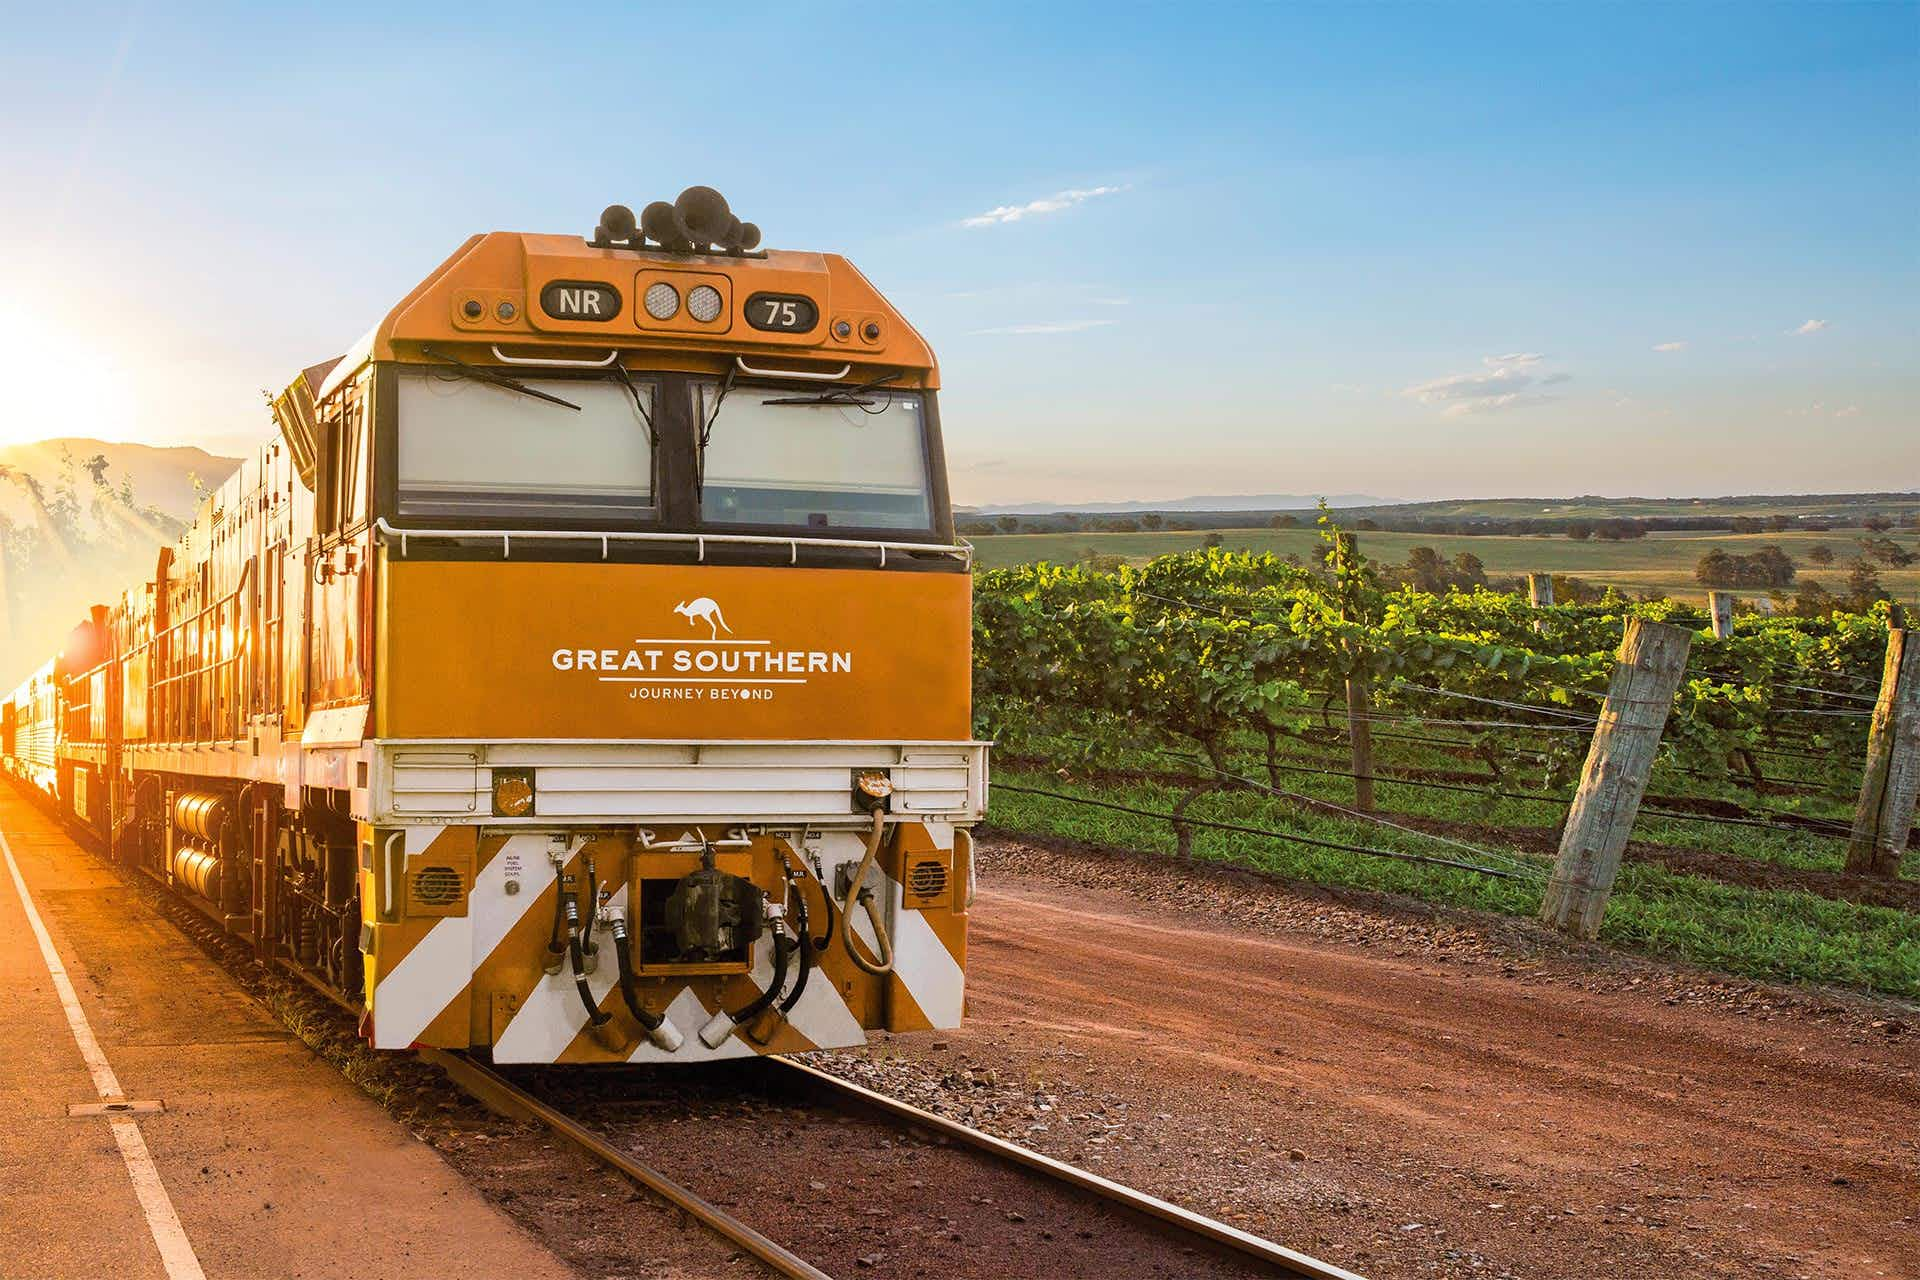 A new Australian rail journey will take you from Adelaide to Brisbane